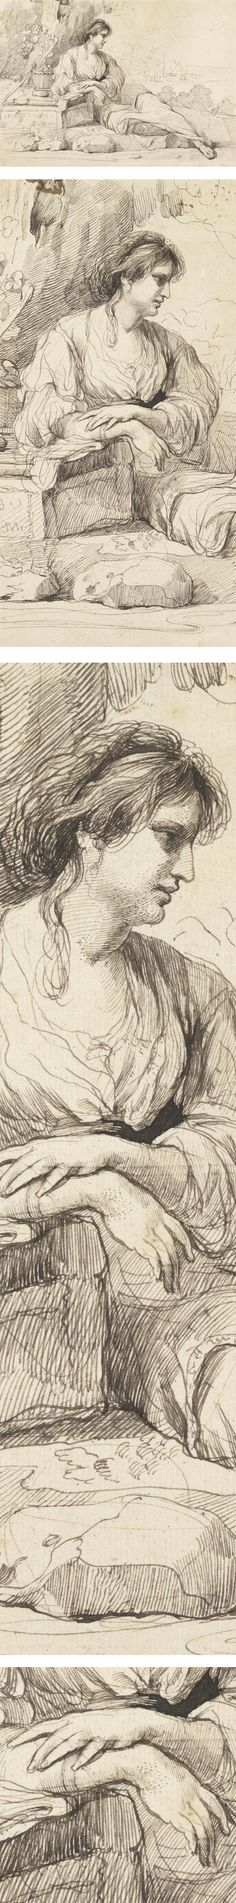 Reclining Female Figure in an Italian Landscape, John Hamilton Mortimer, pen and ink drawing